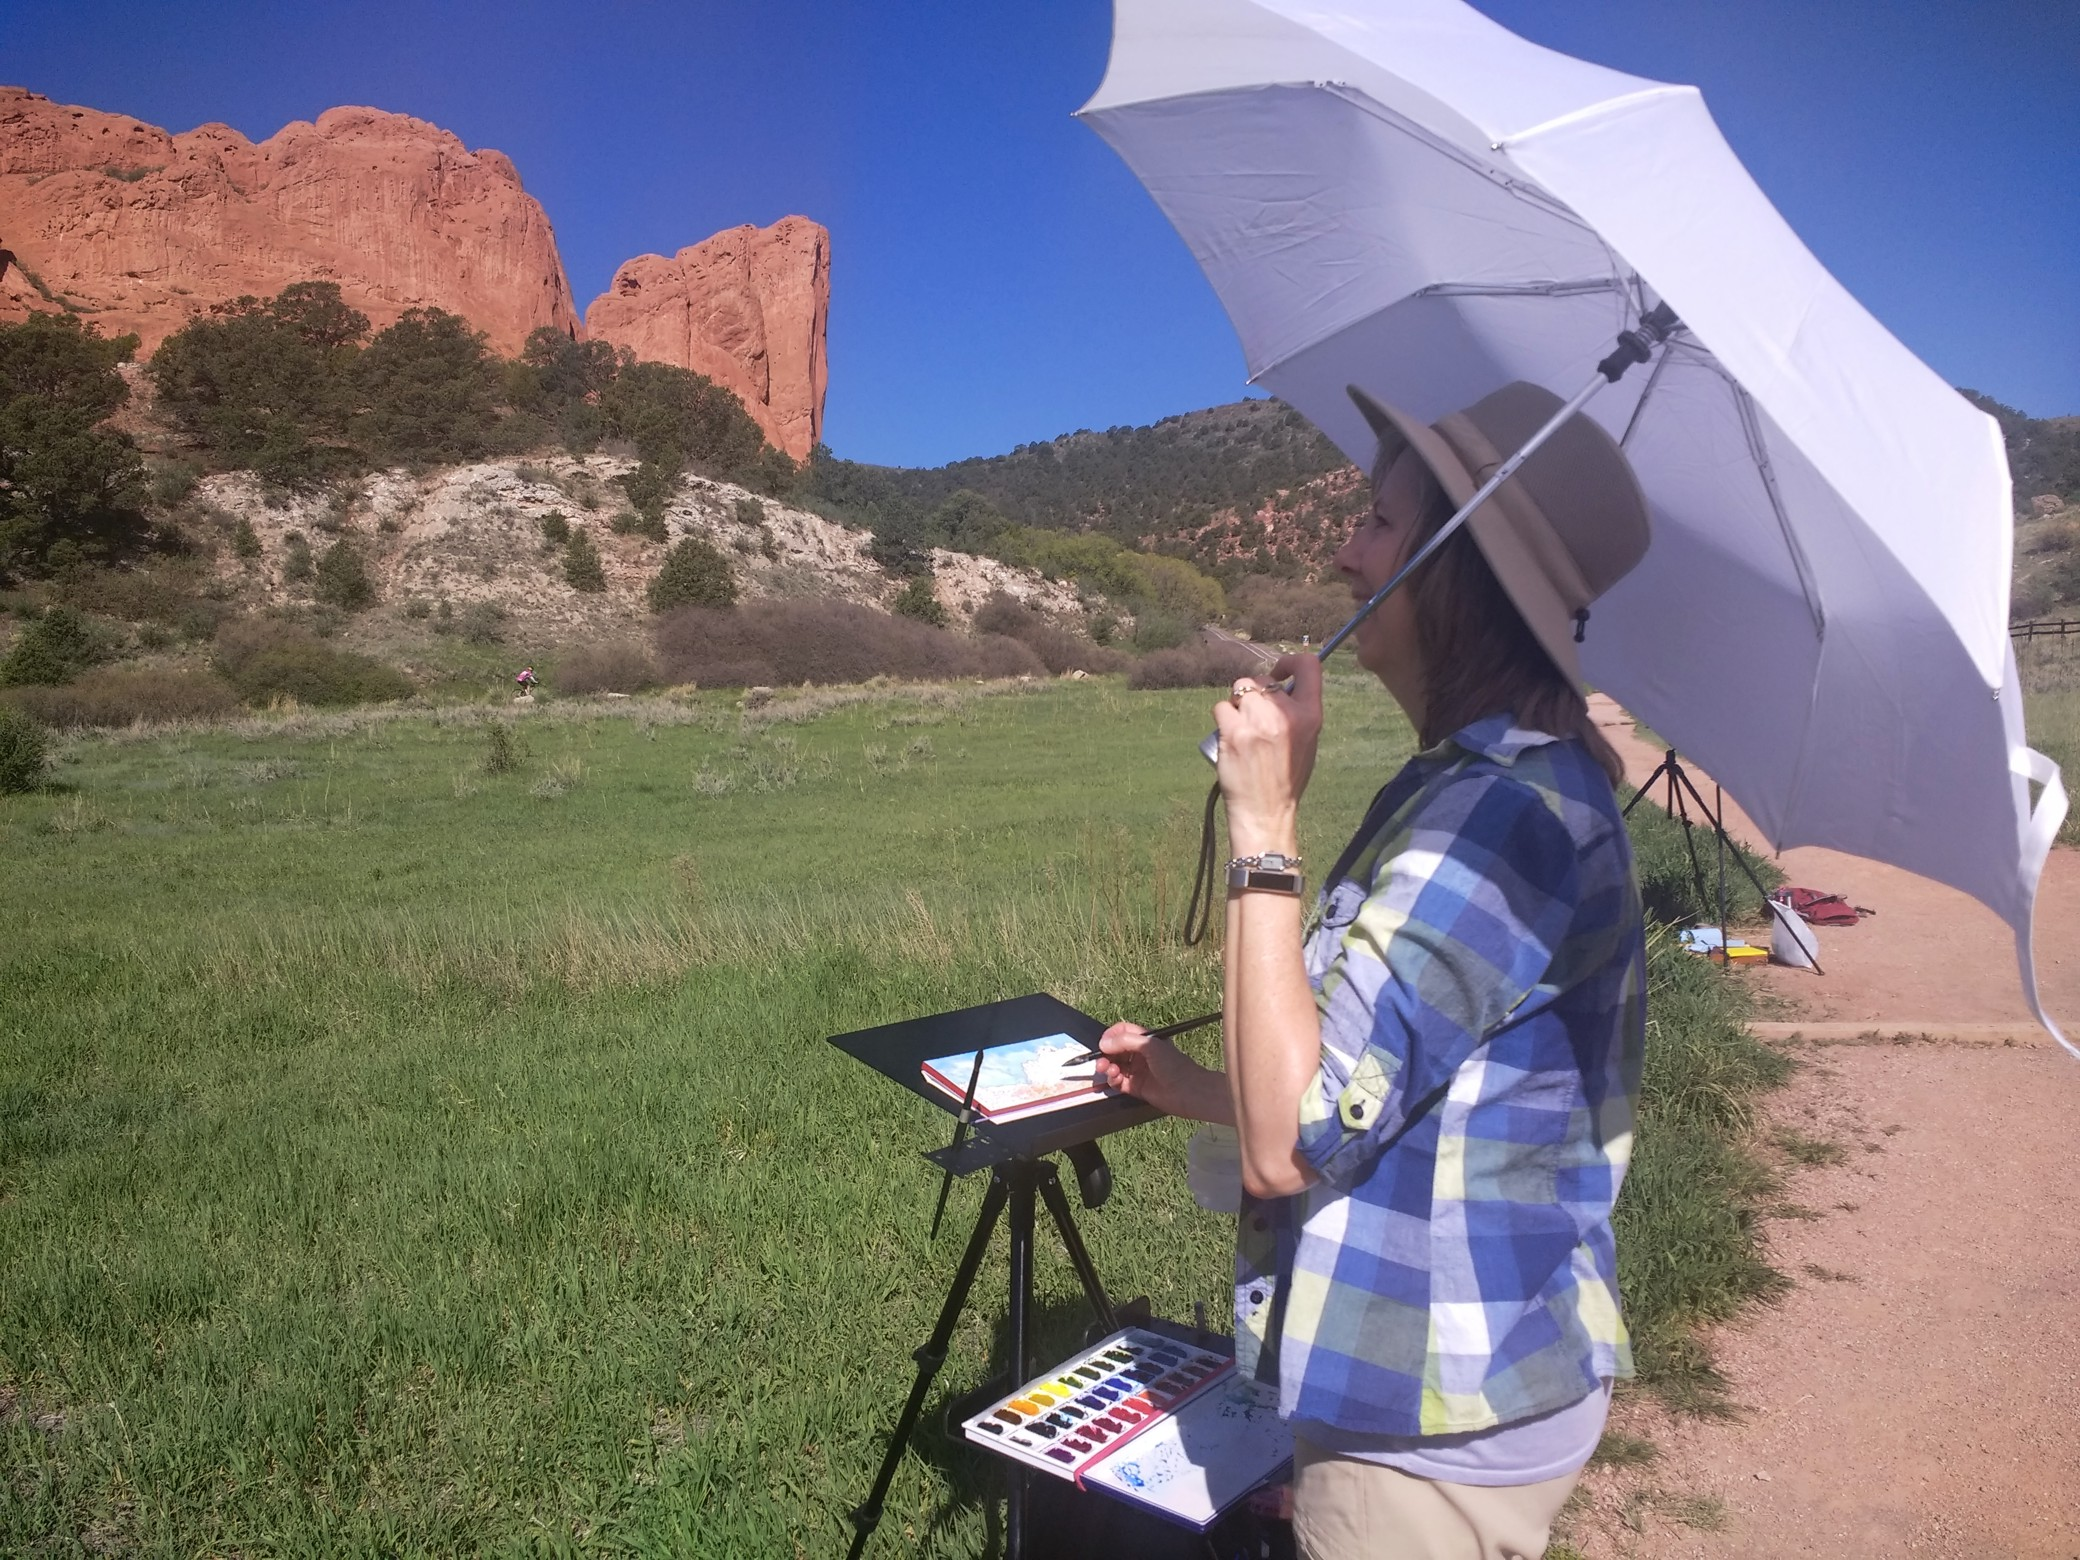 First excursion of the summer was to Garden of the Gods in Colorado Springs.